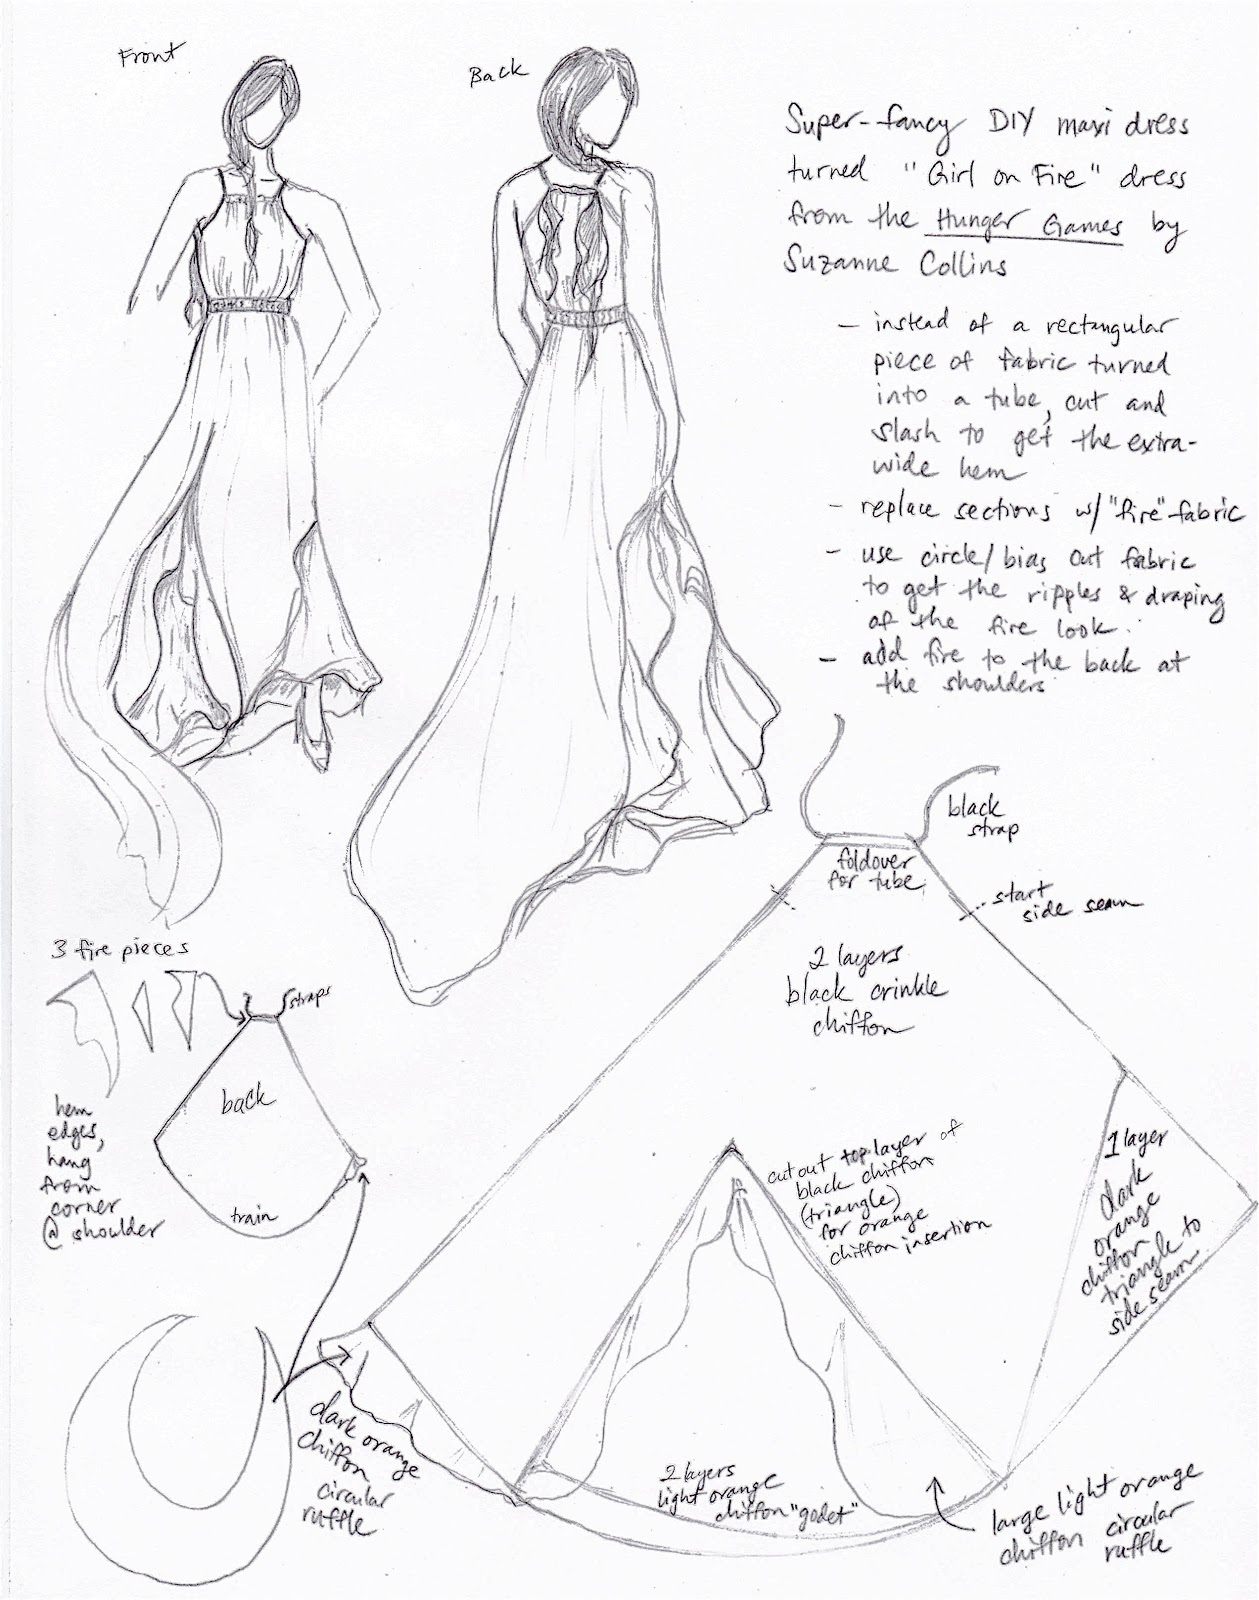 My sketches and breakdown of parts for the girl on fire dress